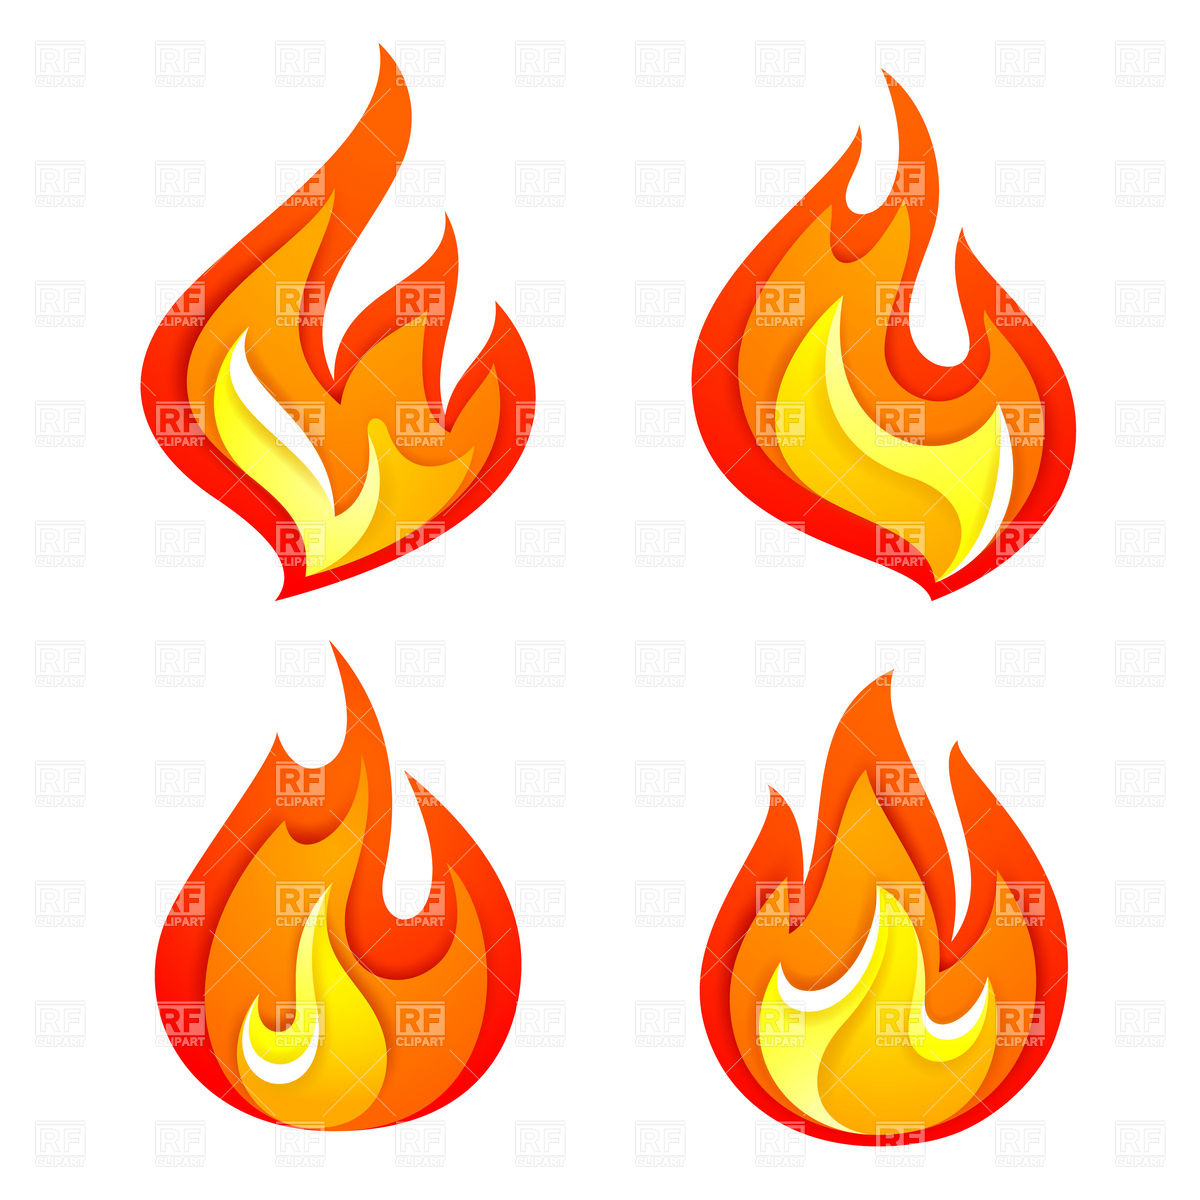 Simple flame clipart graphic royalty free library Simple Flame Drawing | Free download best Simple Flame ... graphic royalty free library